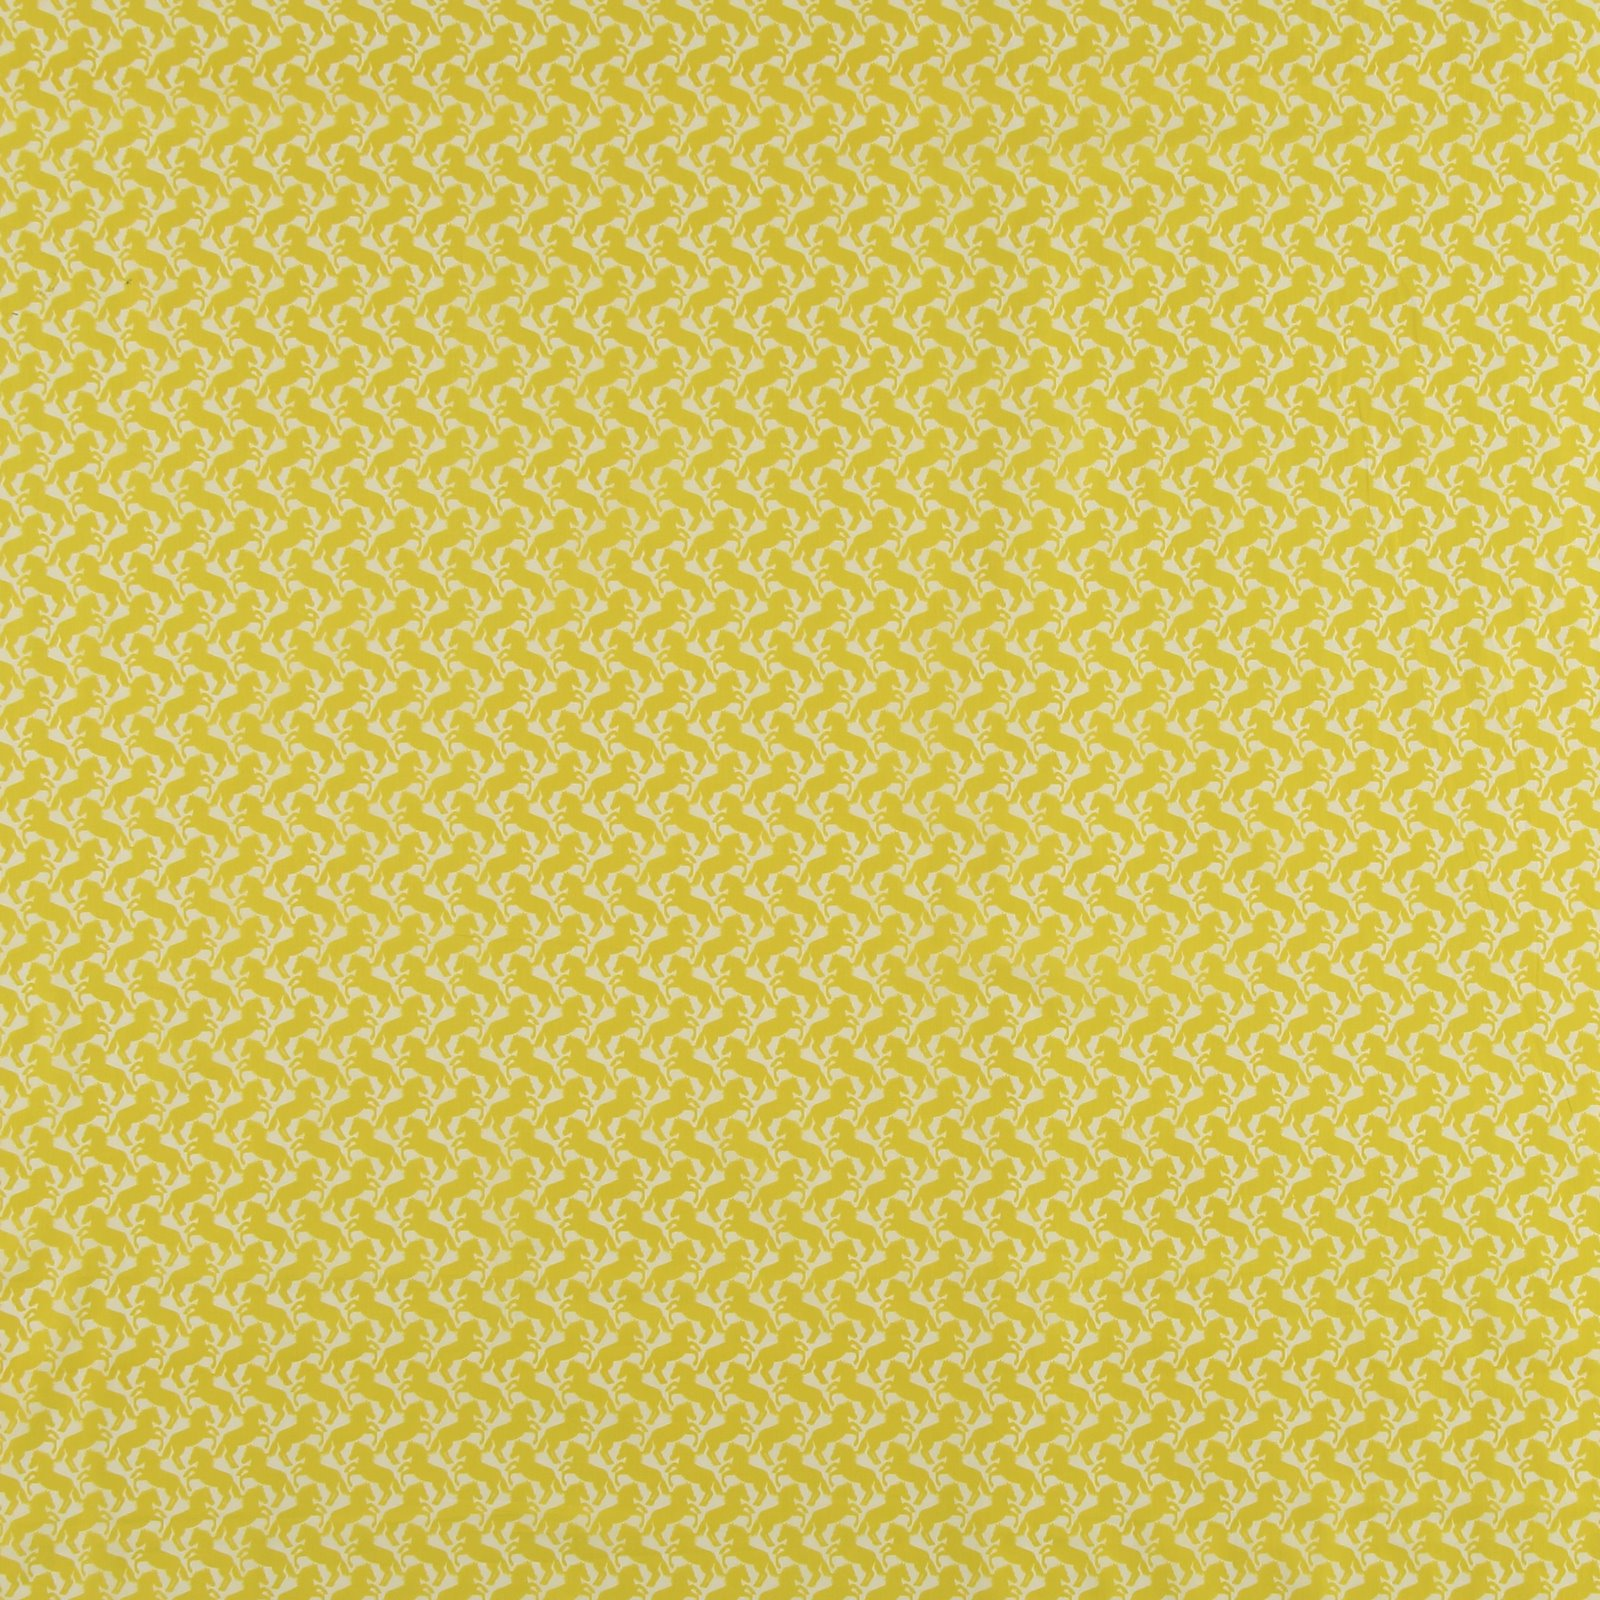 Woven light cotton w yellow horses 501829_pack_sp